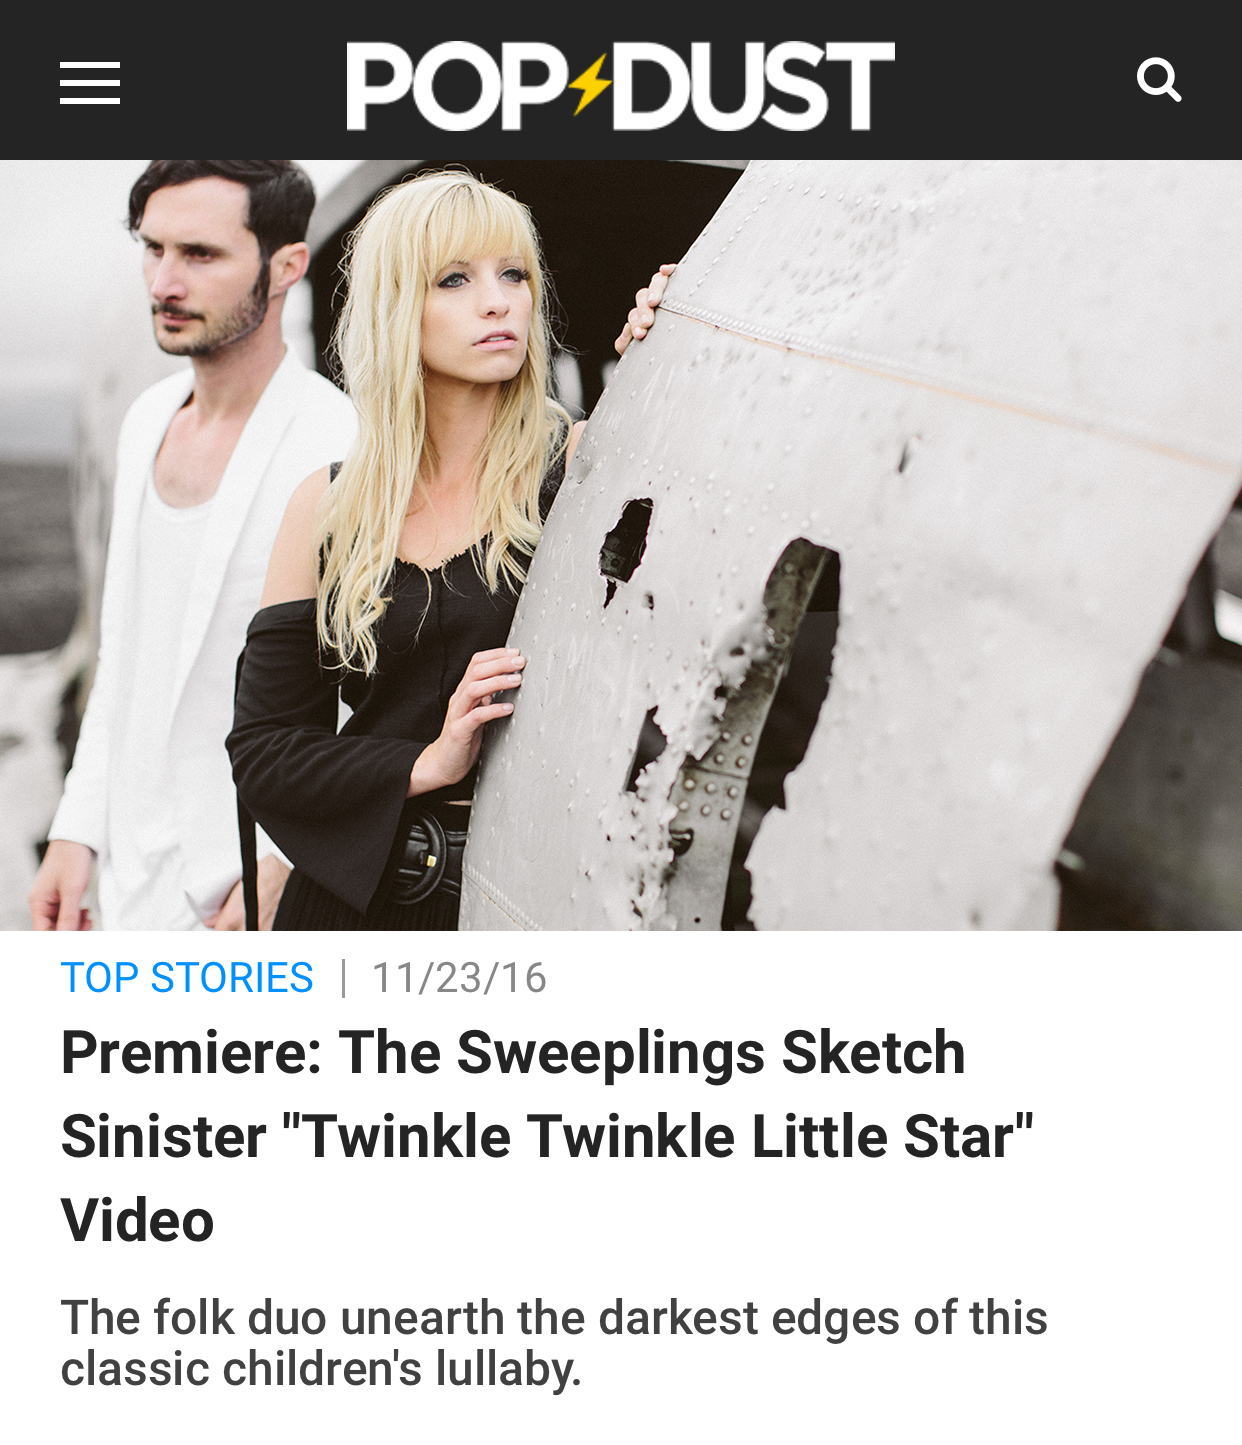 Popdust Premiere - Popdust premieres music video for